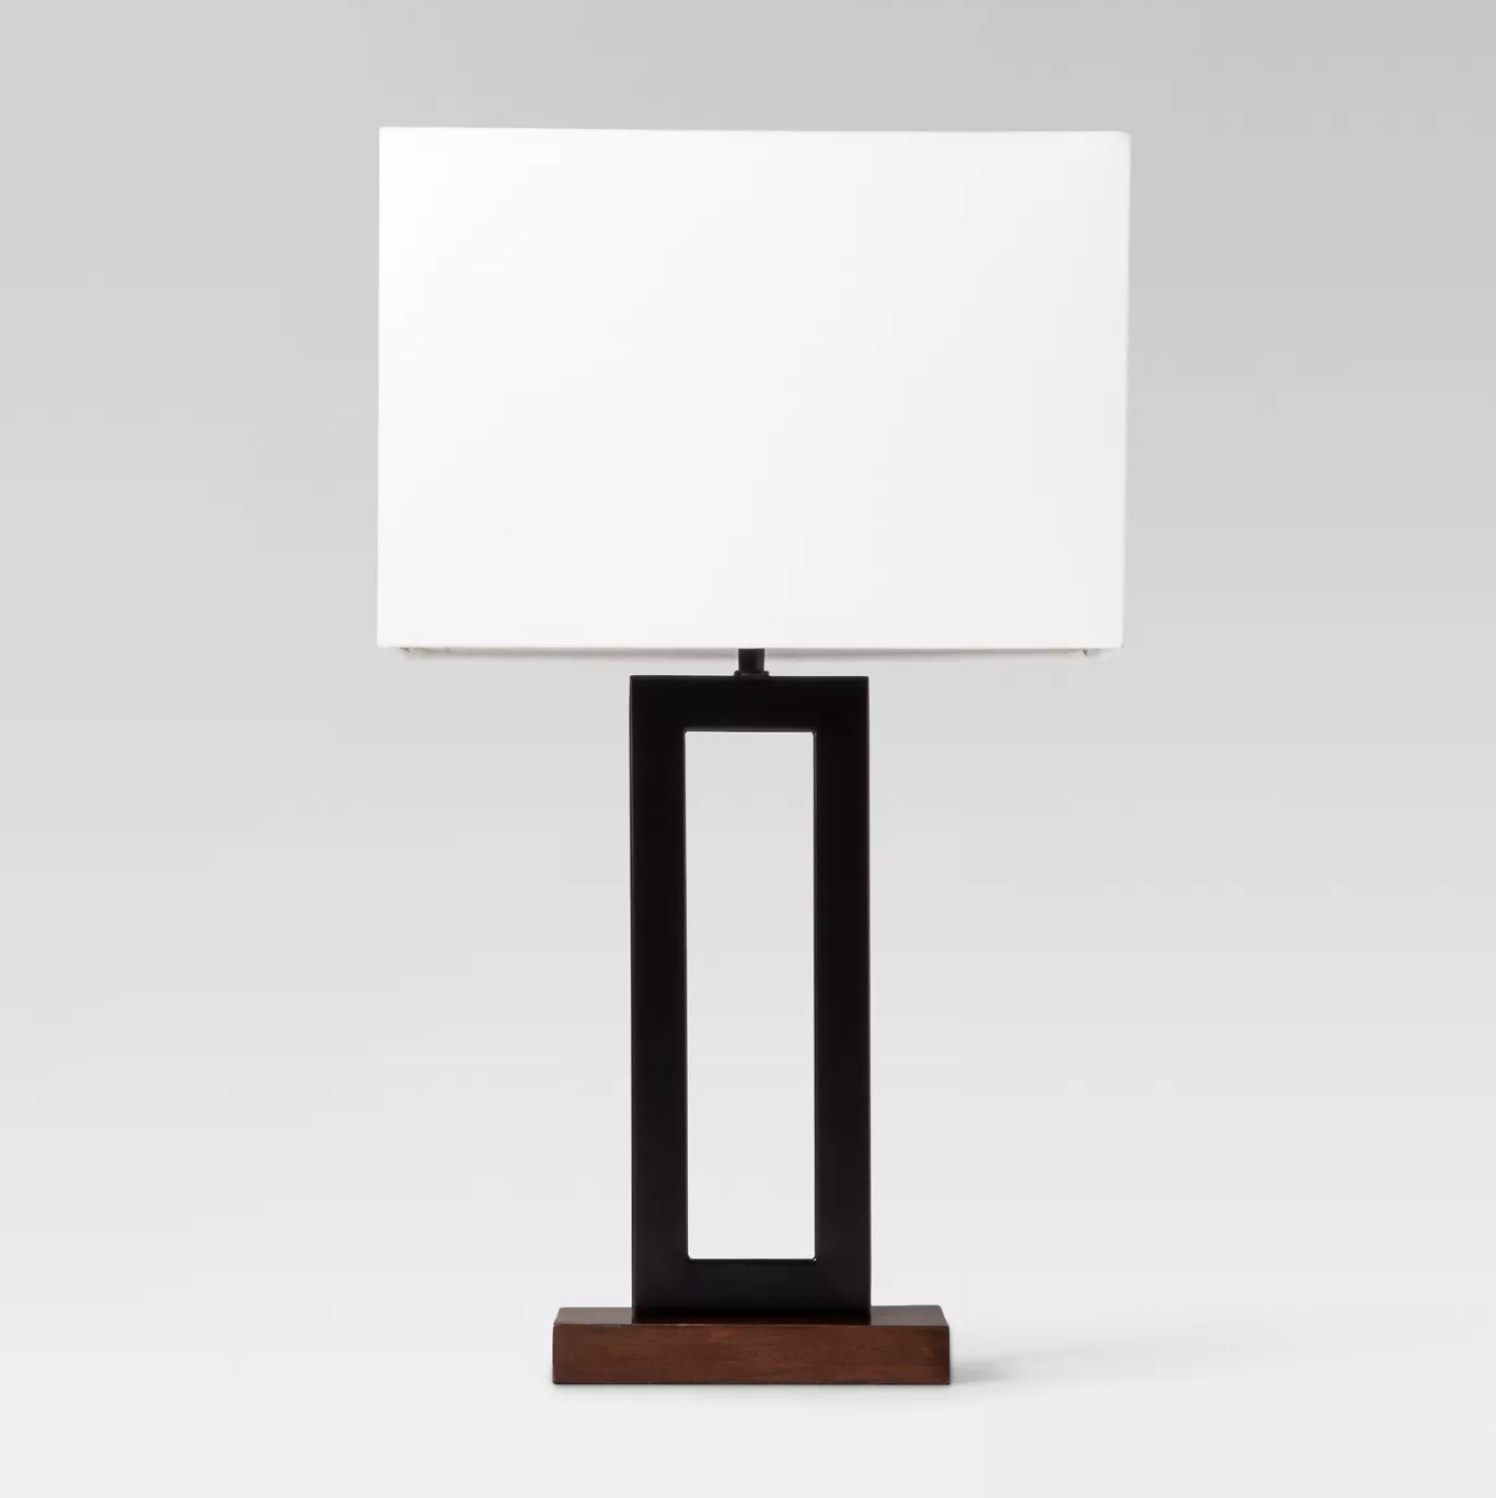 The lamp with a black base